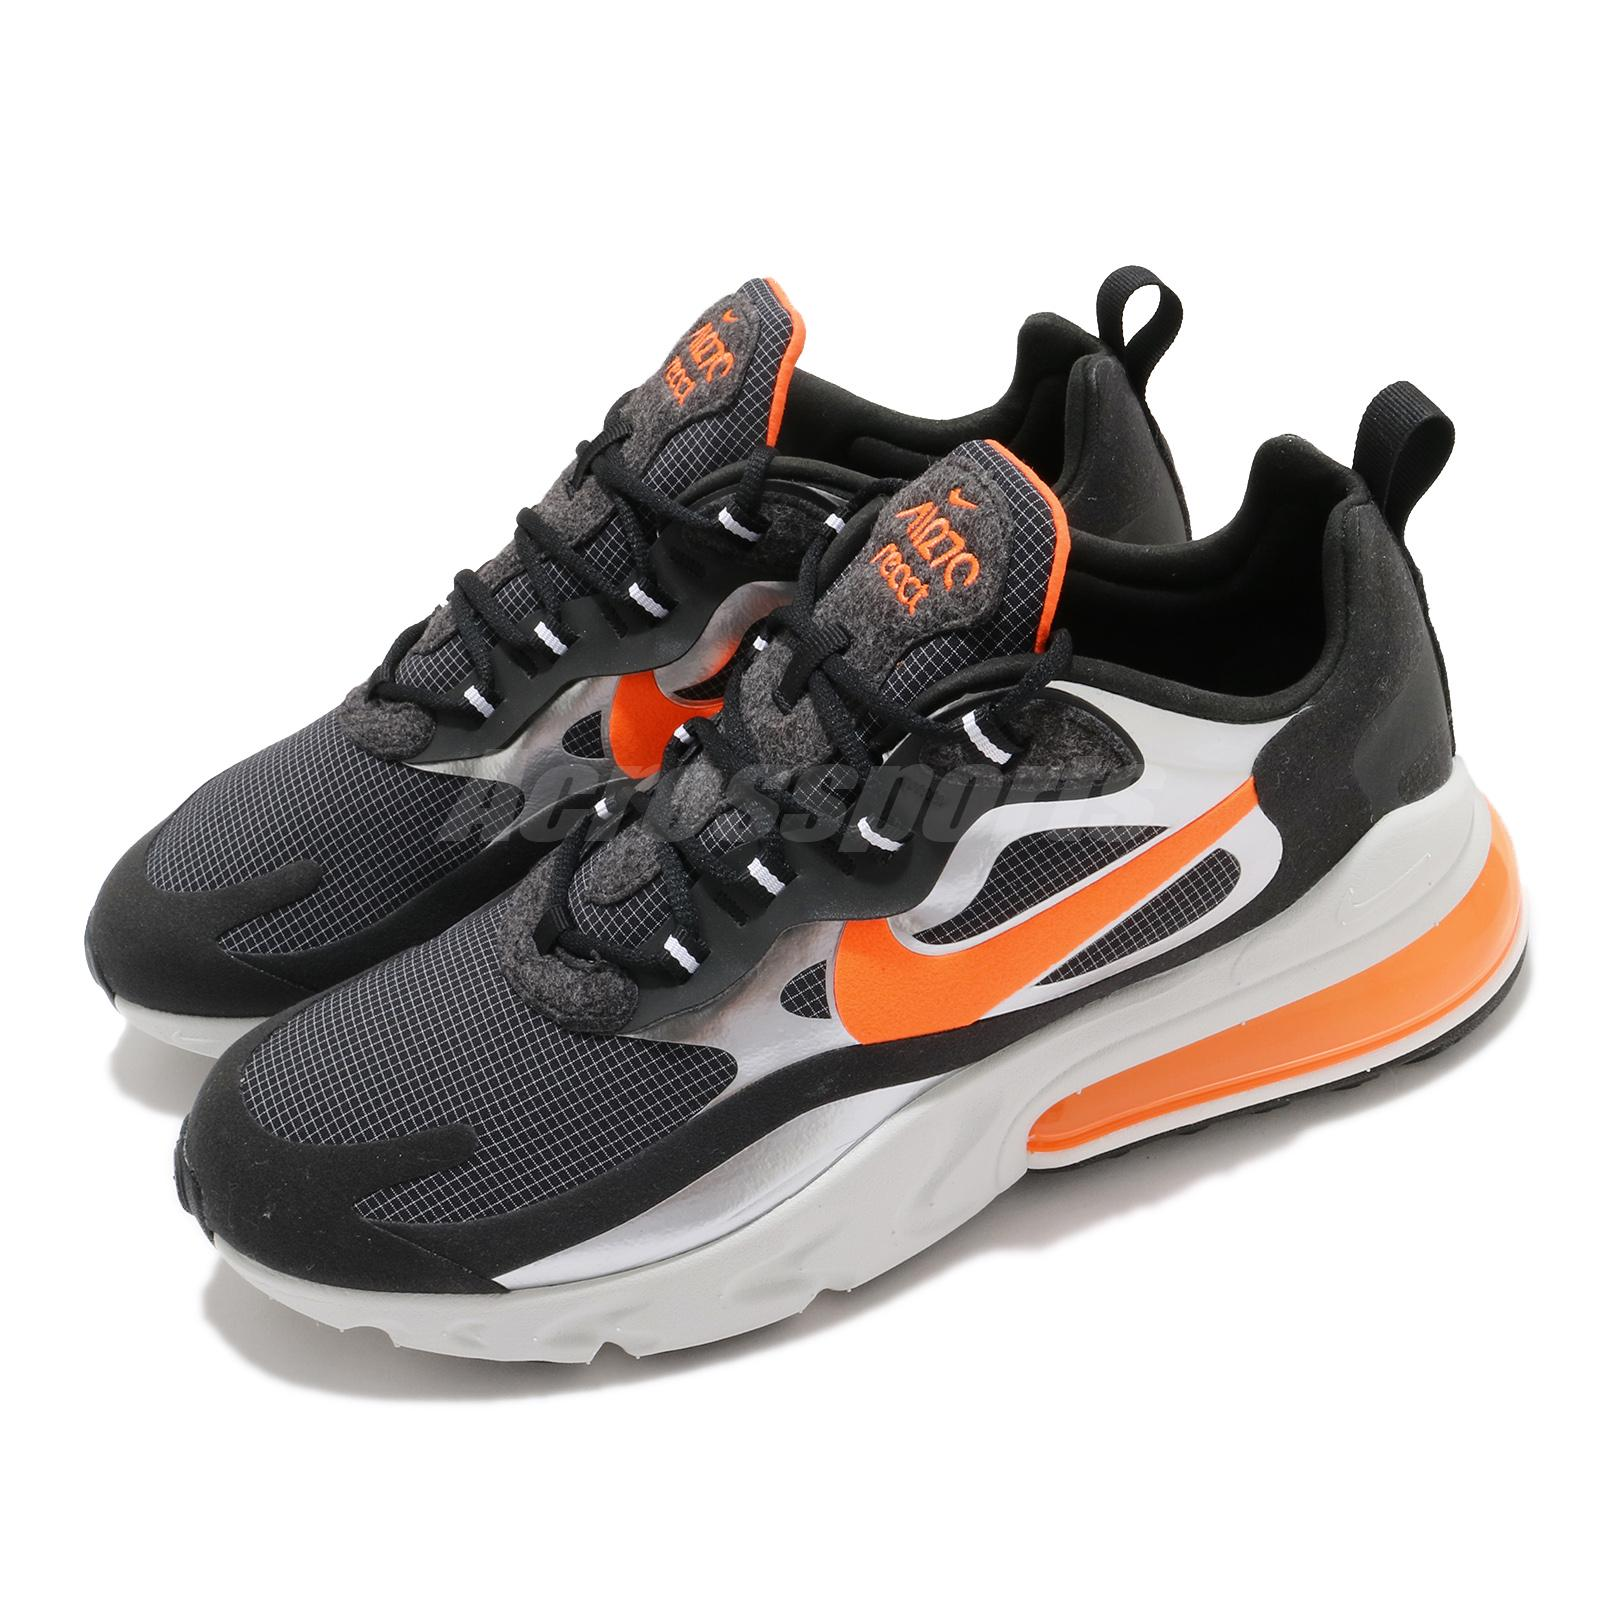 Nike Air Max 270 React Black Orange Men Lifestyle Shoes Sneakers Cq4598 084 Ebay